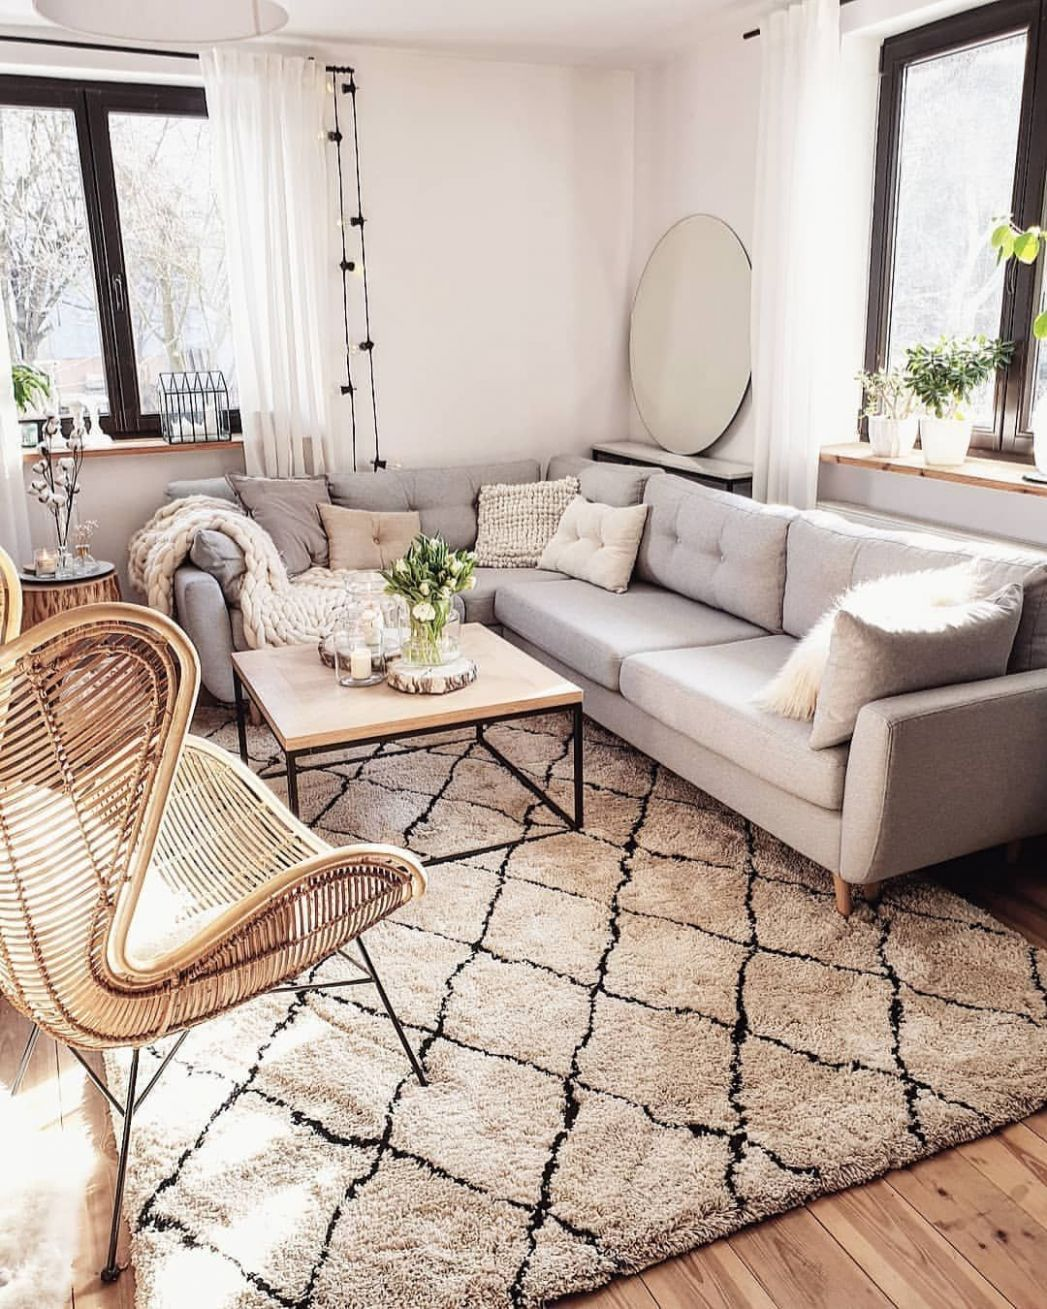 Spaces to live in. Living room decor, living room ideas, how to ..